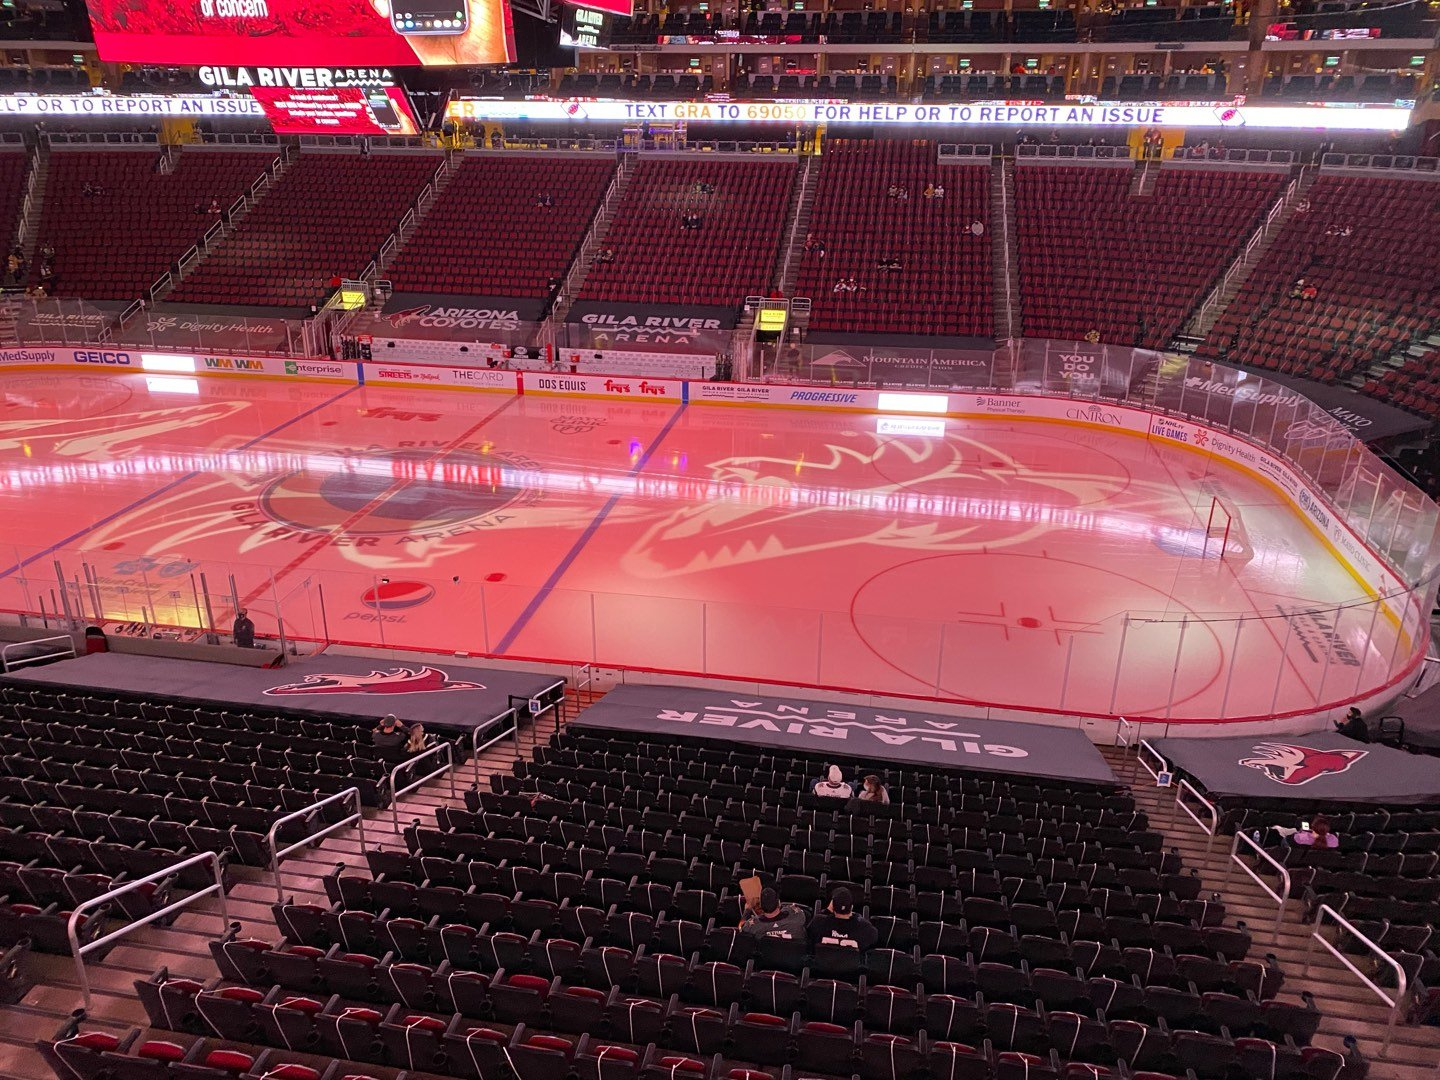 Gila River Arena Section 1104